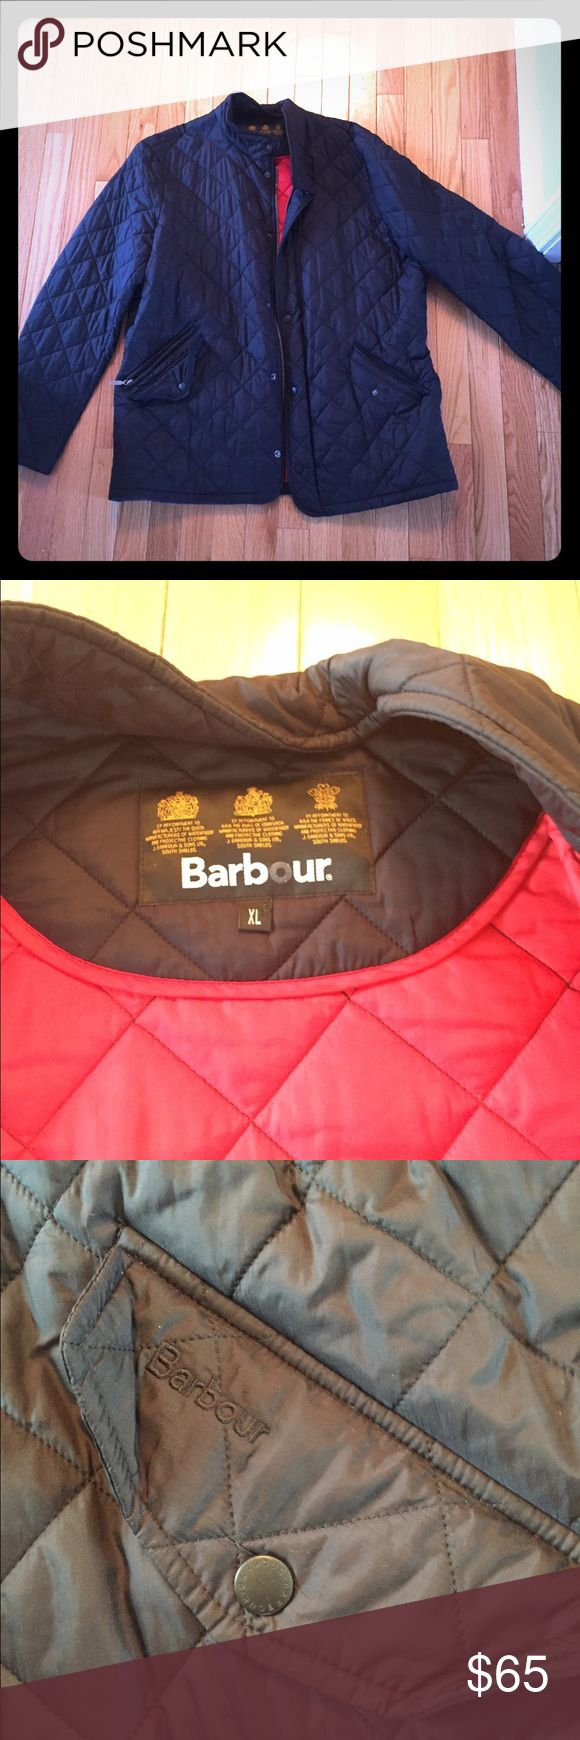 Men's Barbour coat Lined beautiful coat. Bought in Kittery ME at Barbour outlet. Perfect condition. Barbour Jackets & Coats Lightweight & Shirt Jackets